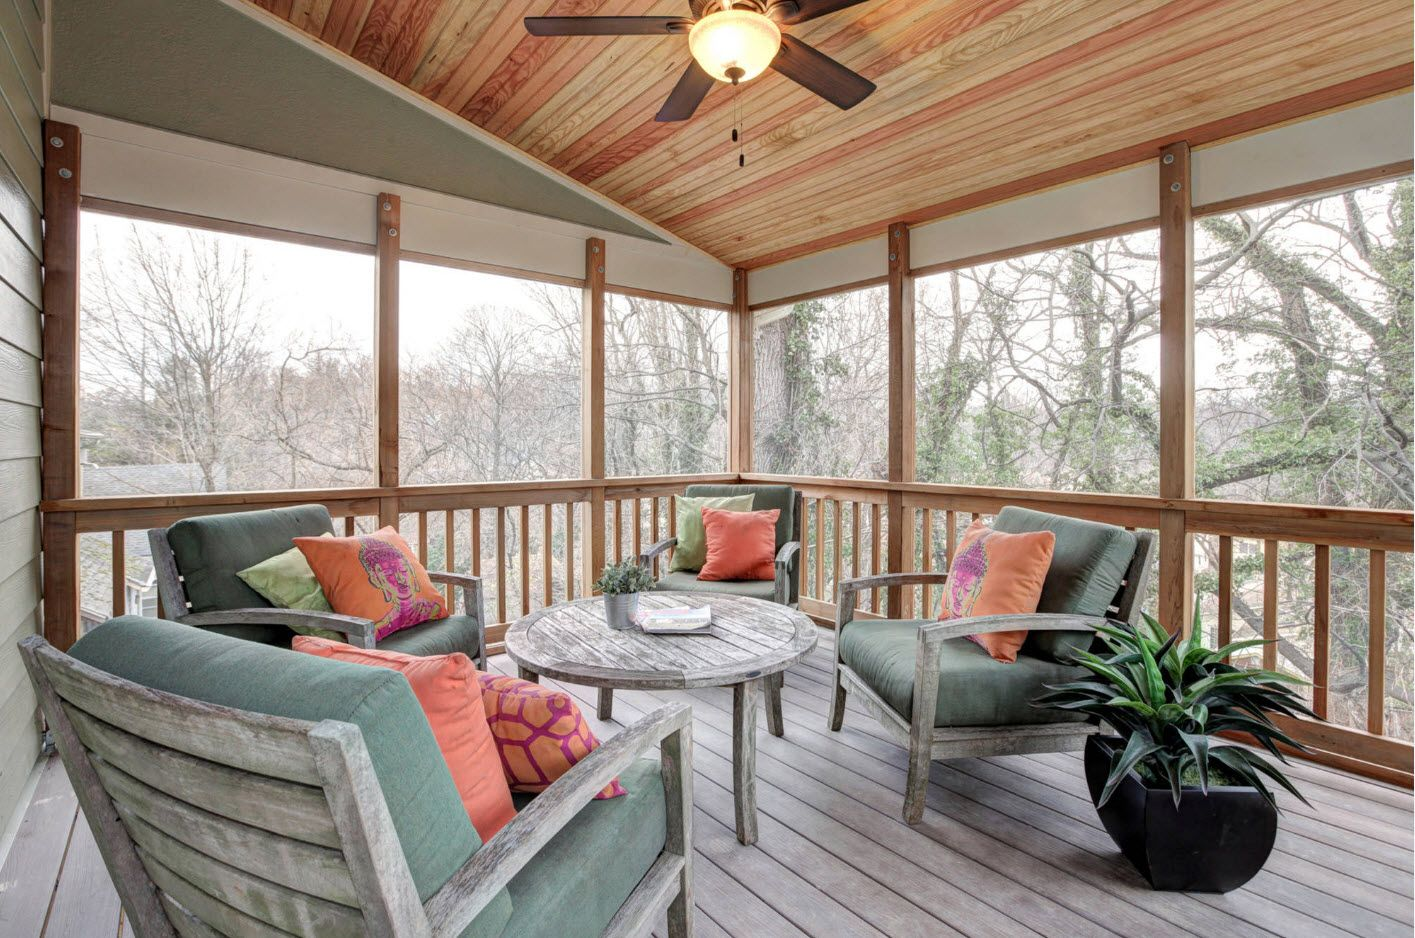 Country House Porch Decoration & Design Ideas. Modern styled patio